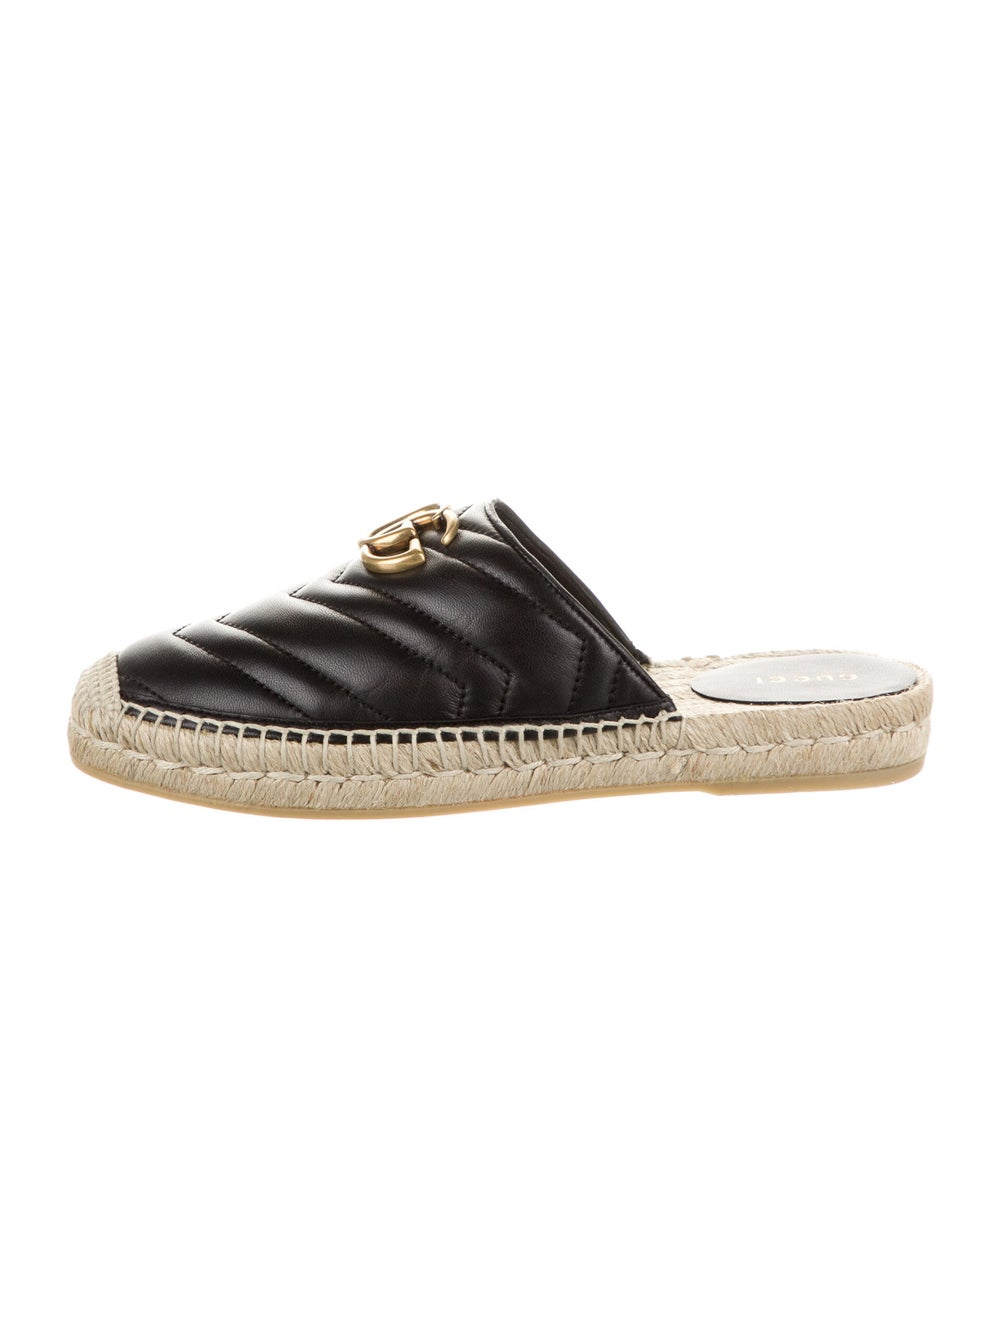 Gucci Double G Logo Leather Mules Black - image 1